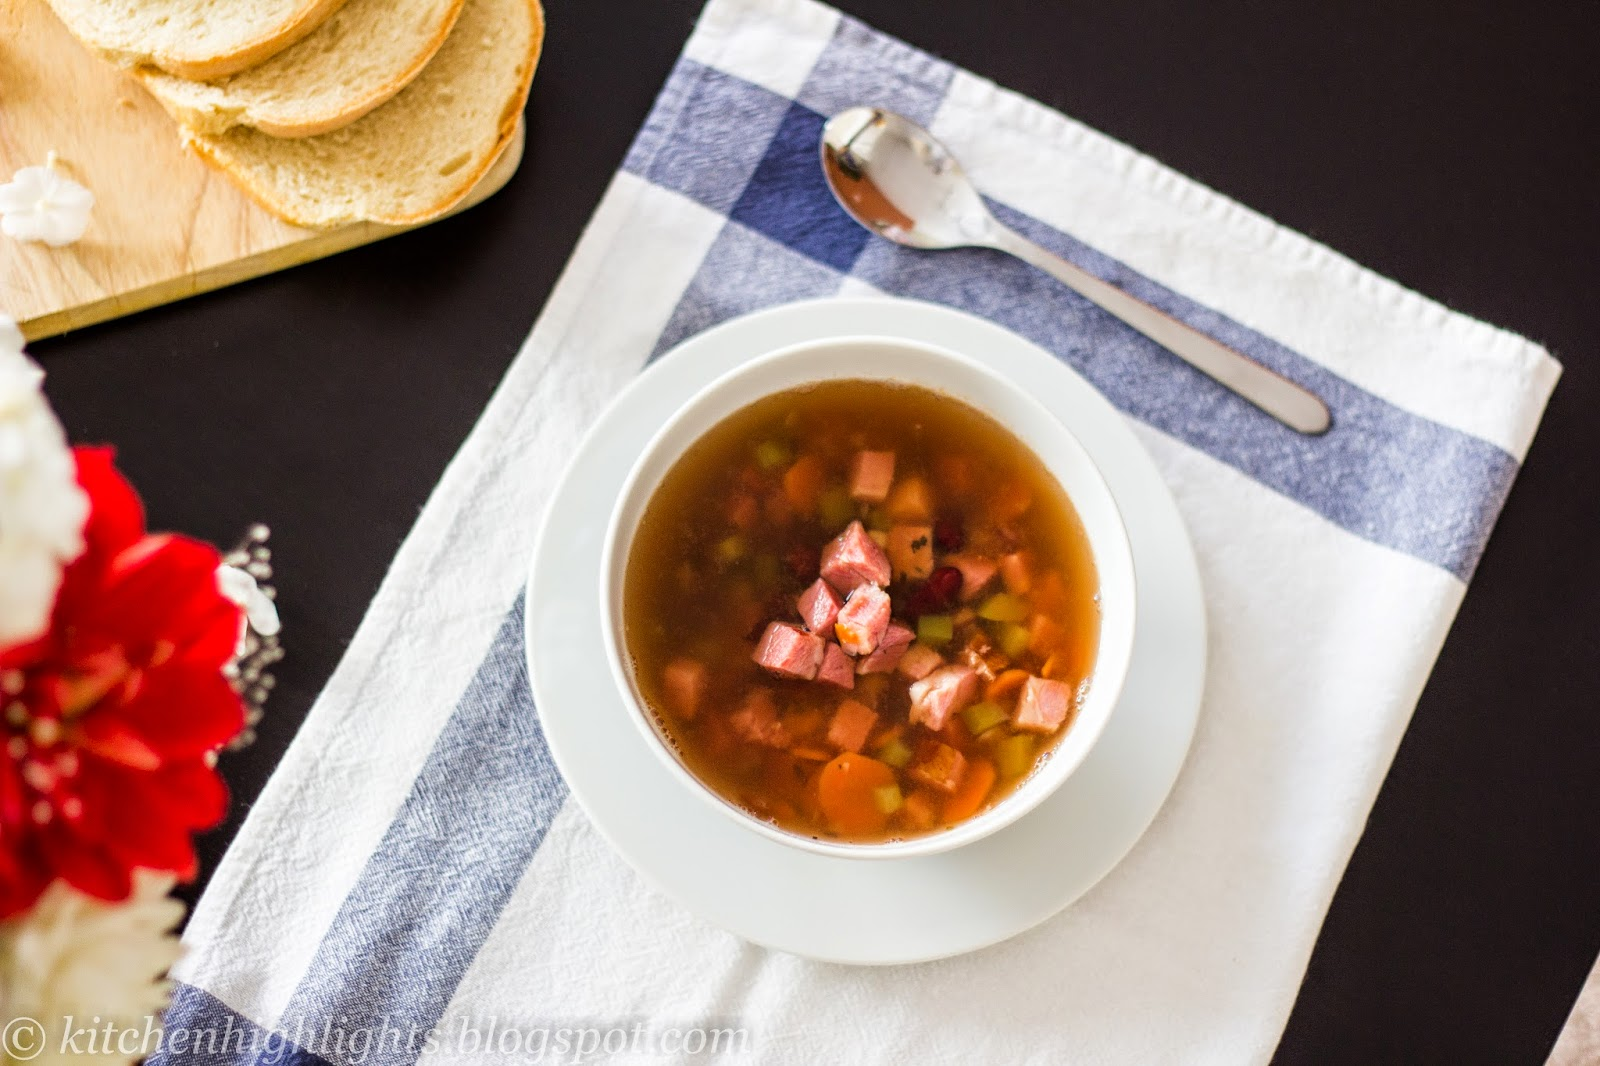 This soup is a satisfying combination of red beans, vegetables and meat